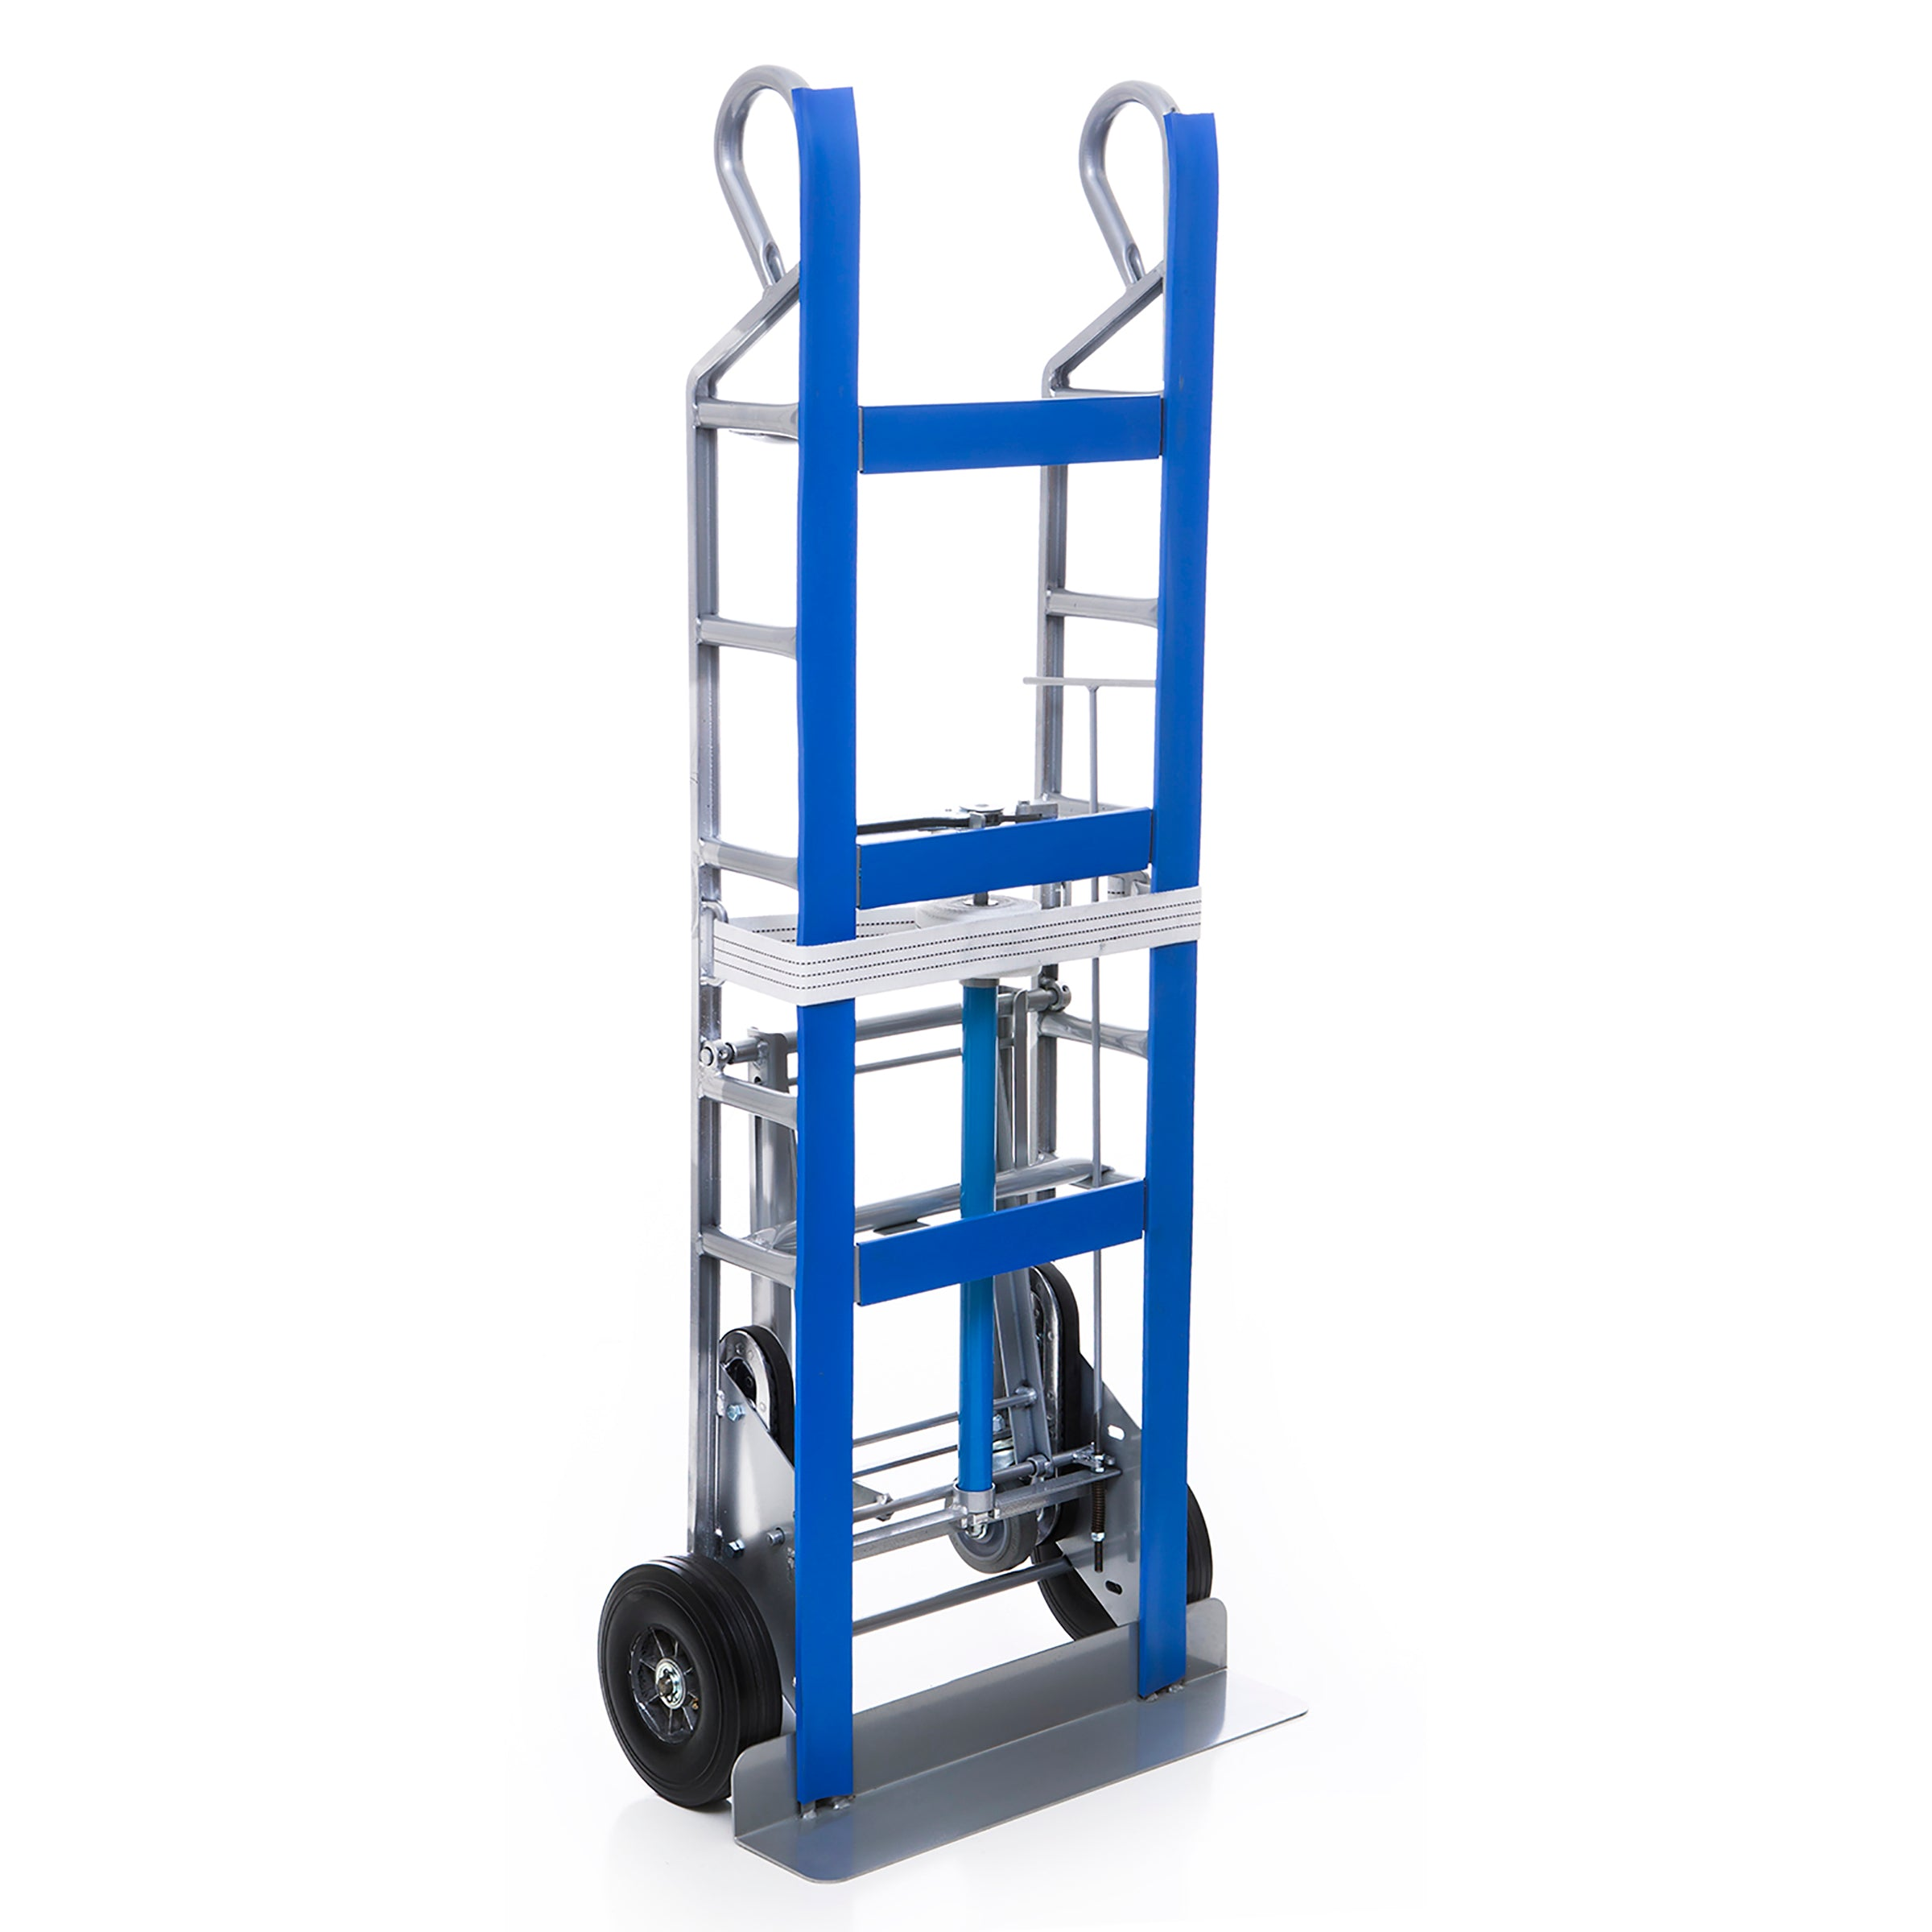 4-Wheel Appliance Hand Truck - Swing-Out